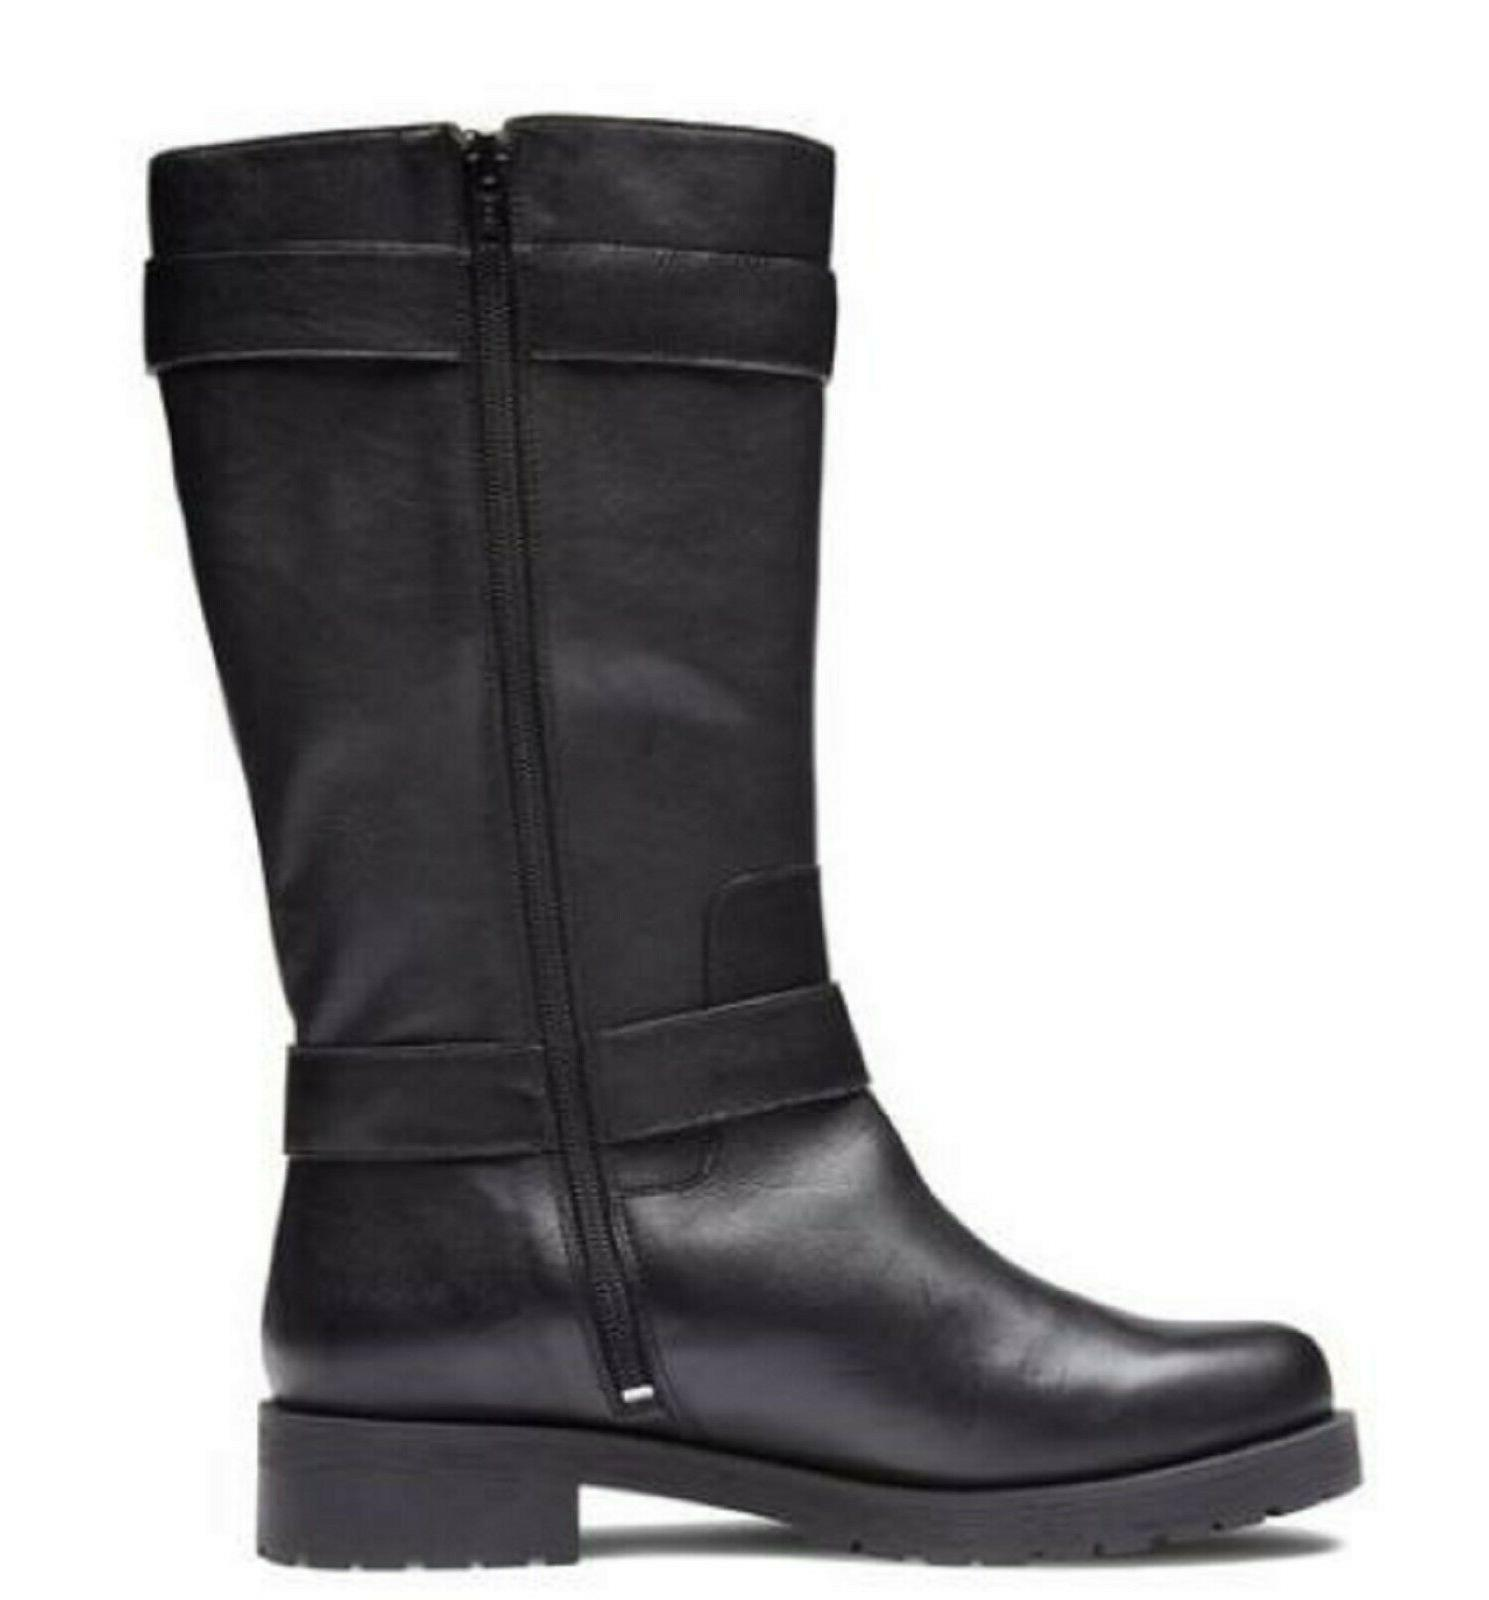 Vionic Orthaheel Leather Supportive Boots